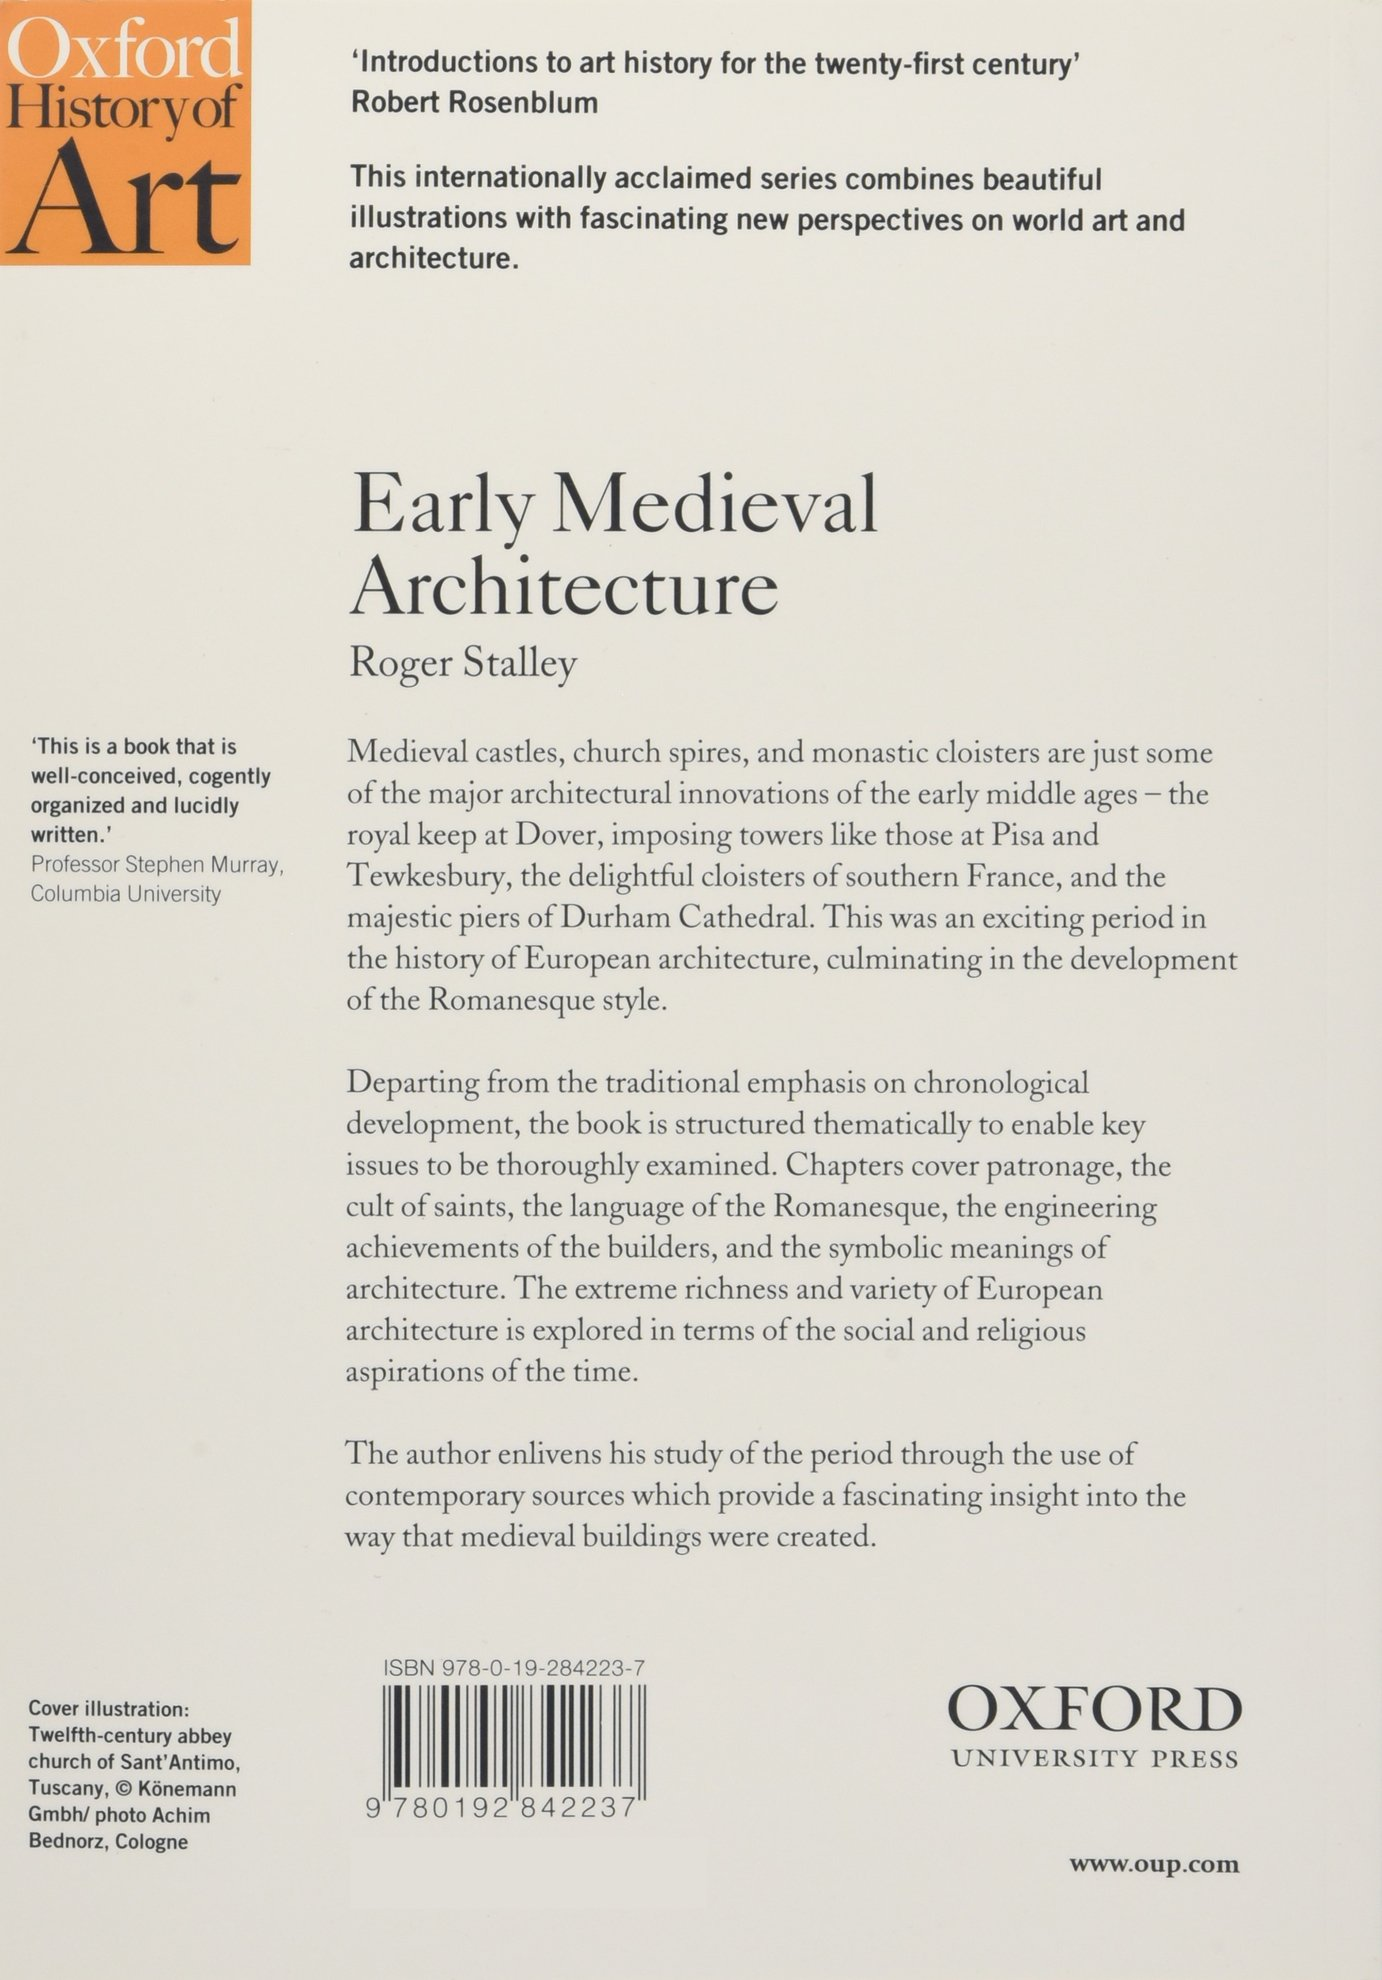 buy early medieval architecture oxford history of art book online